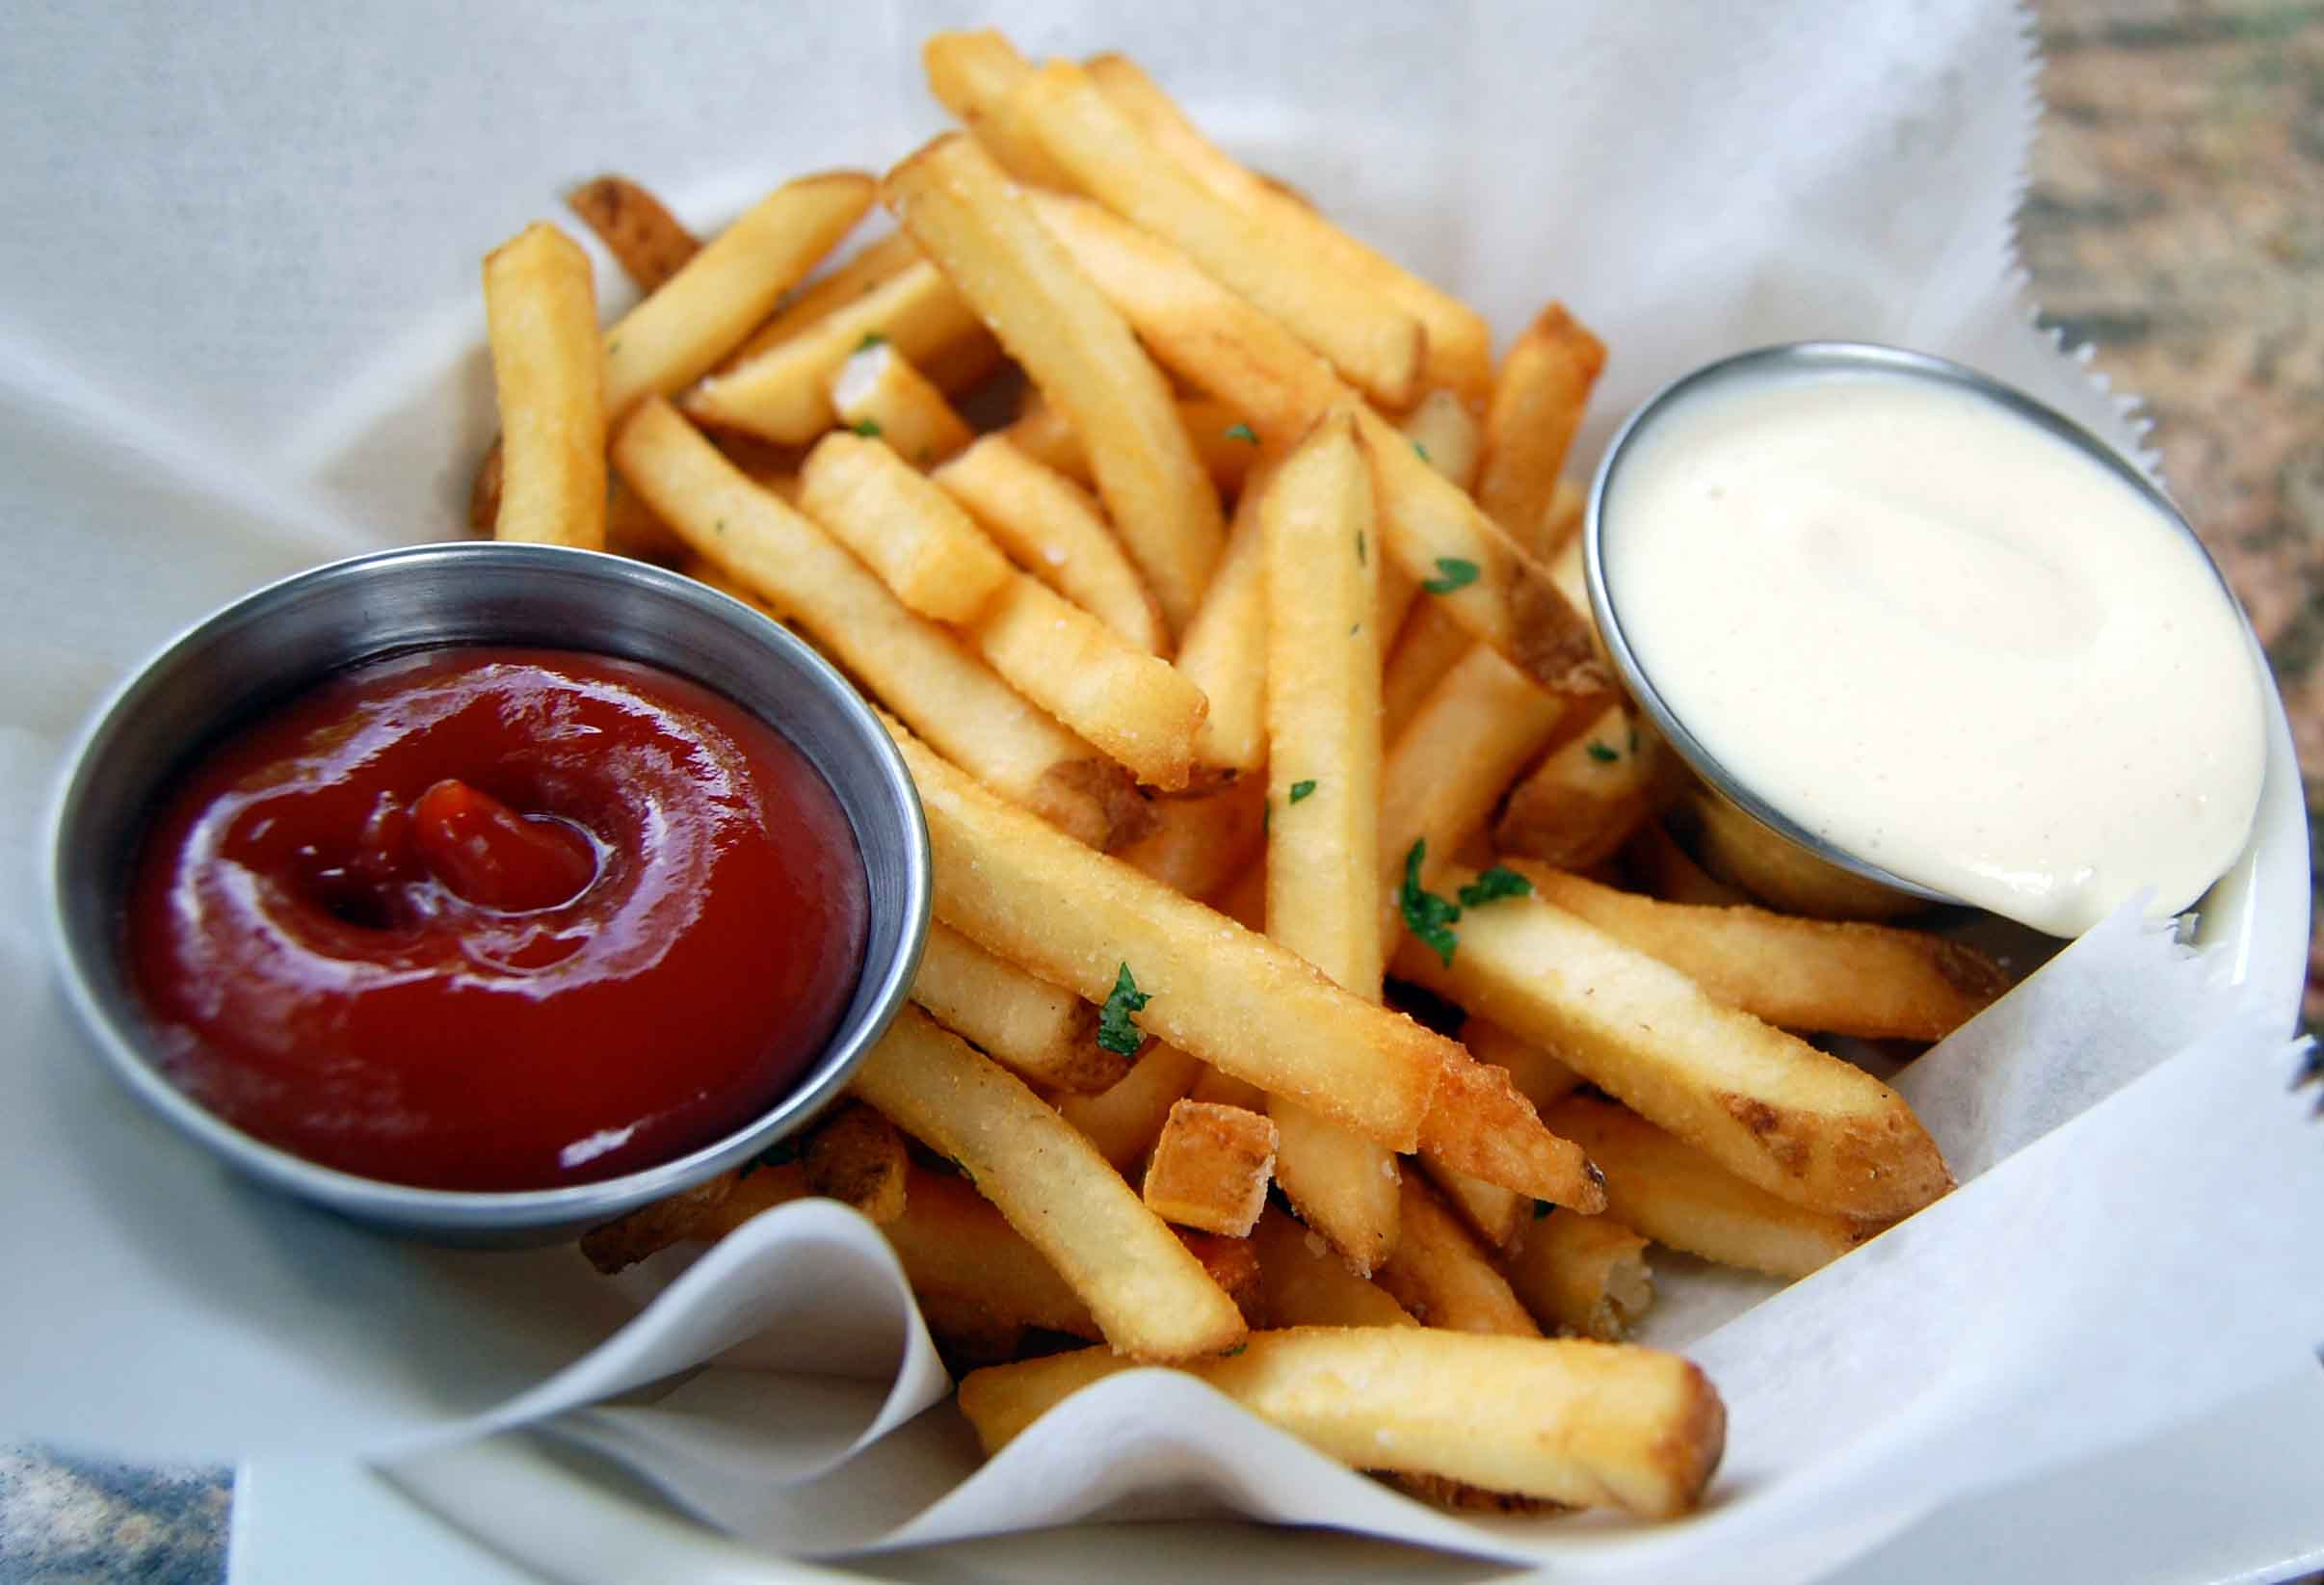 not-house-made-fries-w-truffle-aioli-angry-ketchup